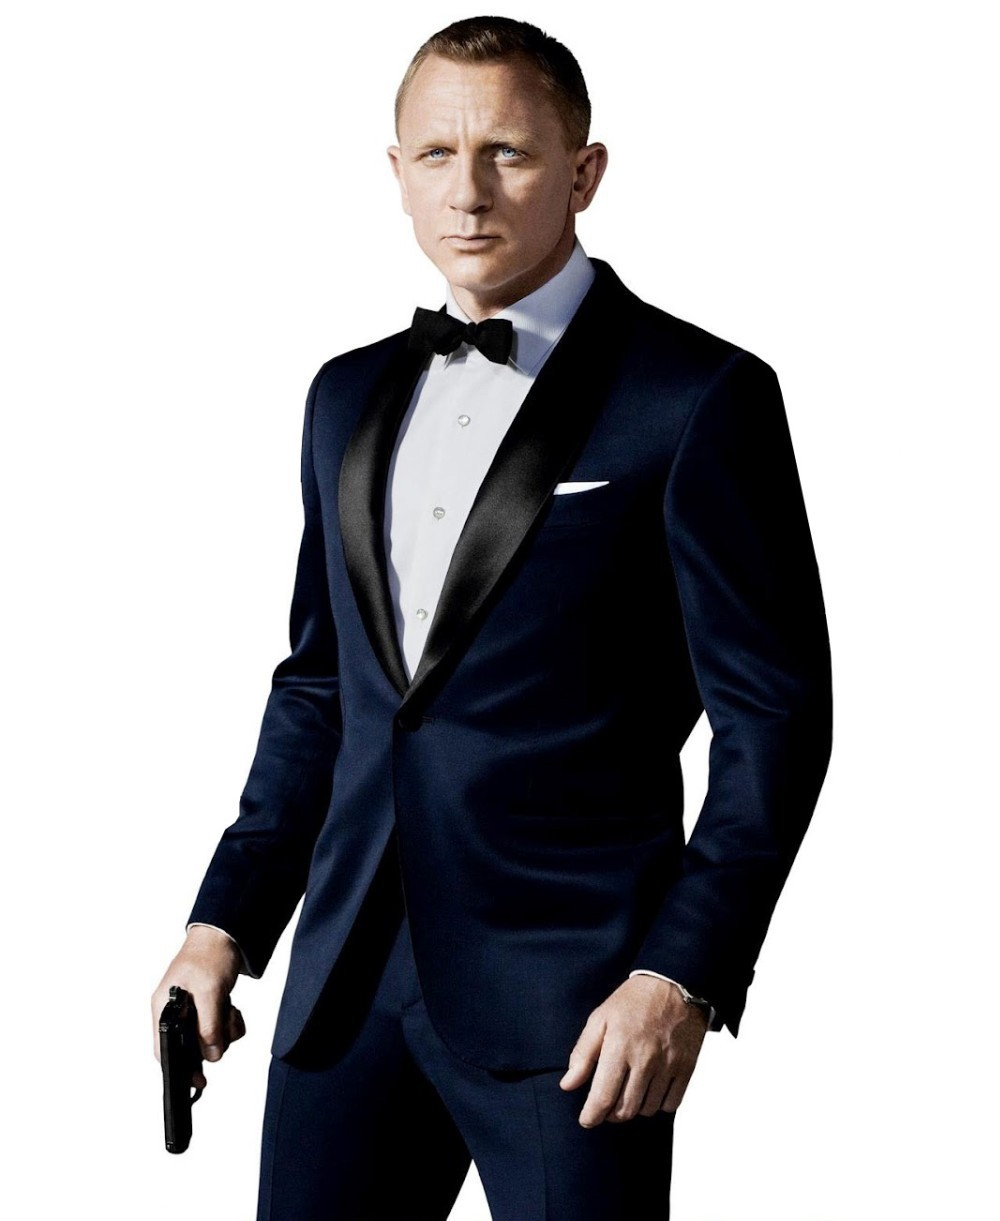 Wedding Groom Tuxedo aliexpress com buy colours wear grey suit grooms wedding tuxedos mens stage clothing 2015 new arrival blackblue bridal tuxedo